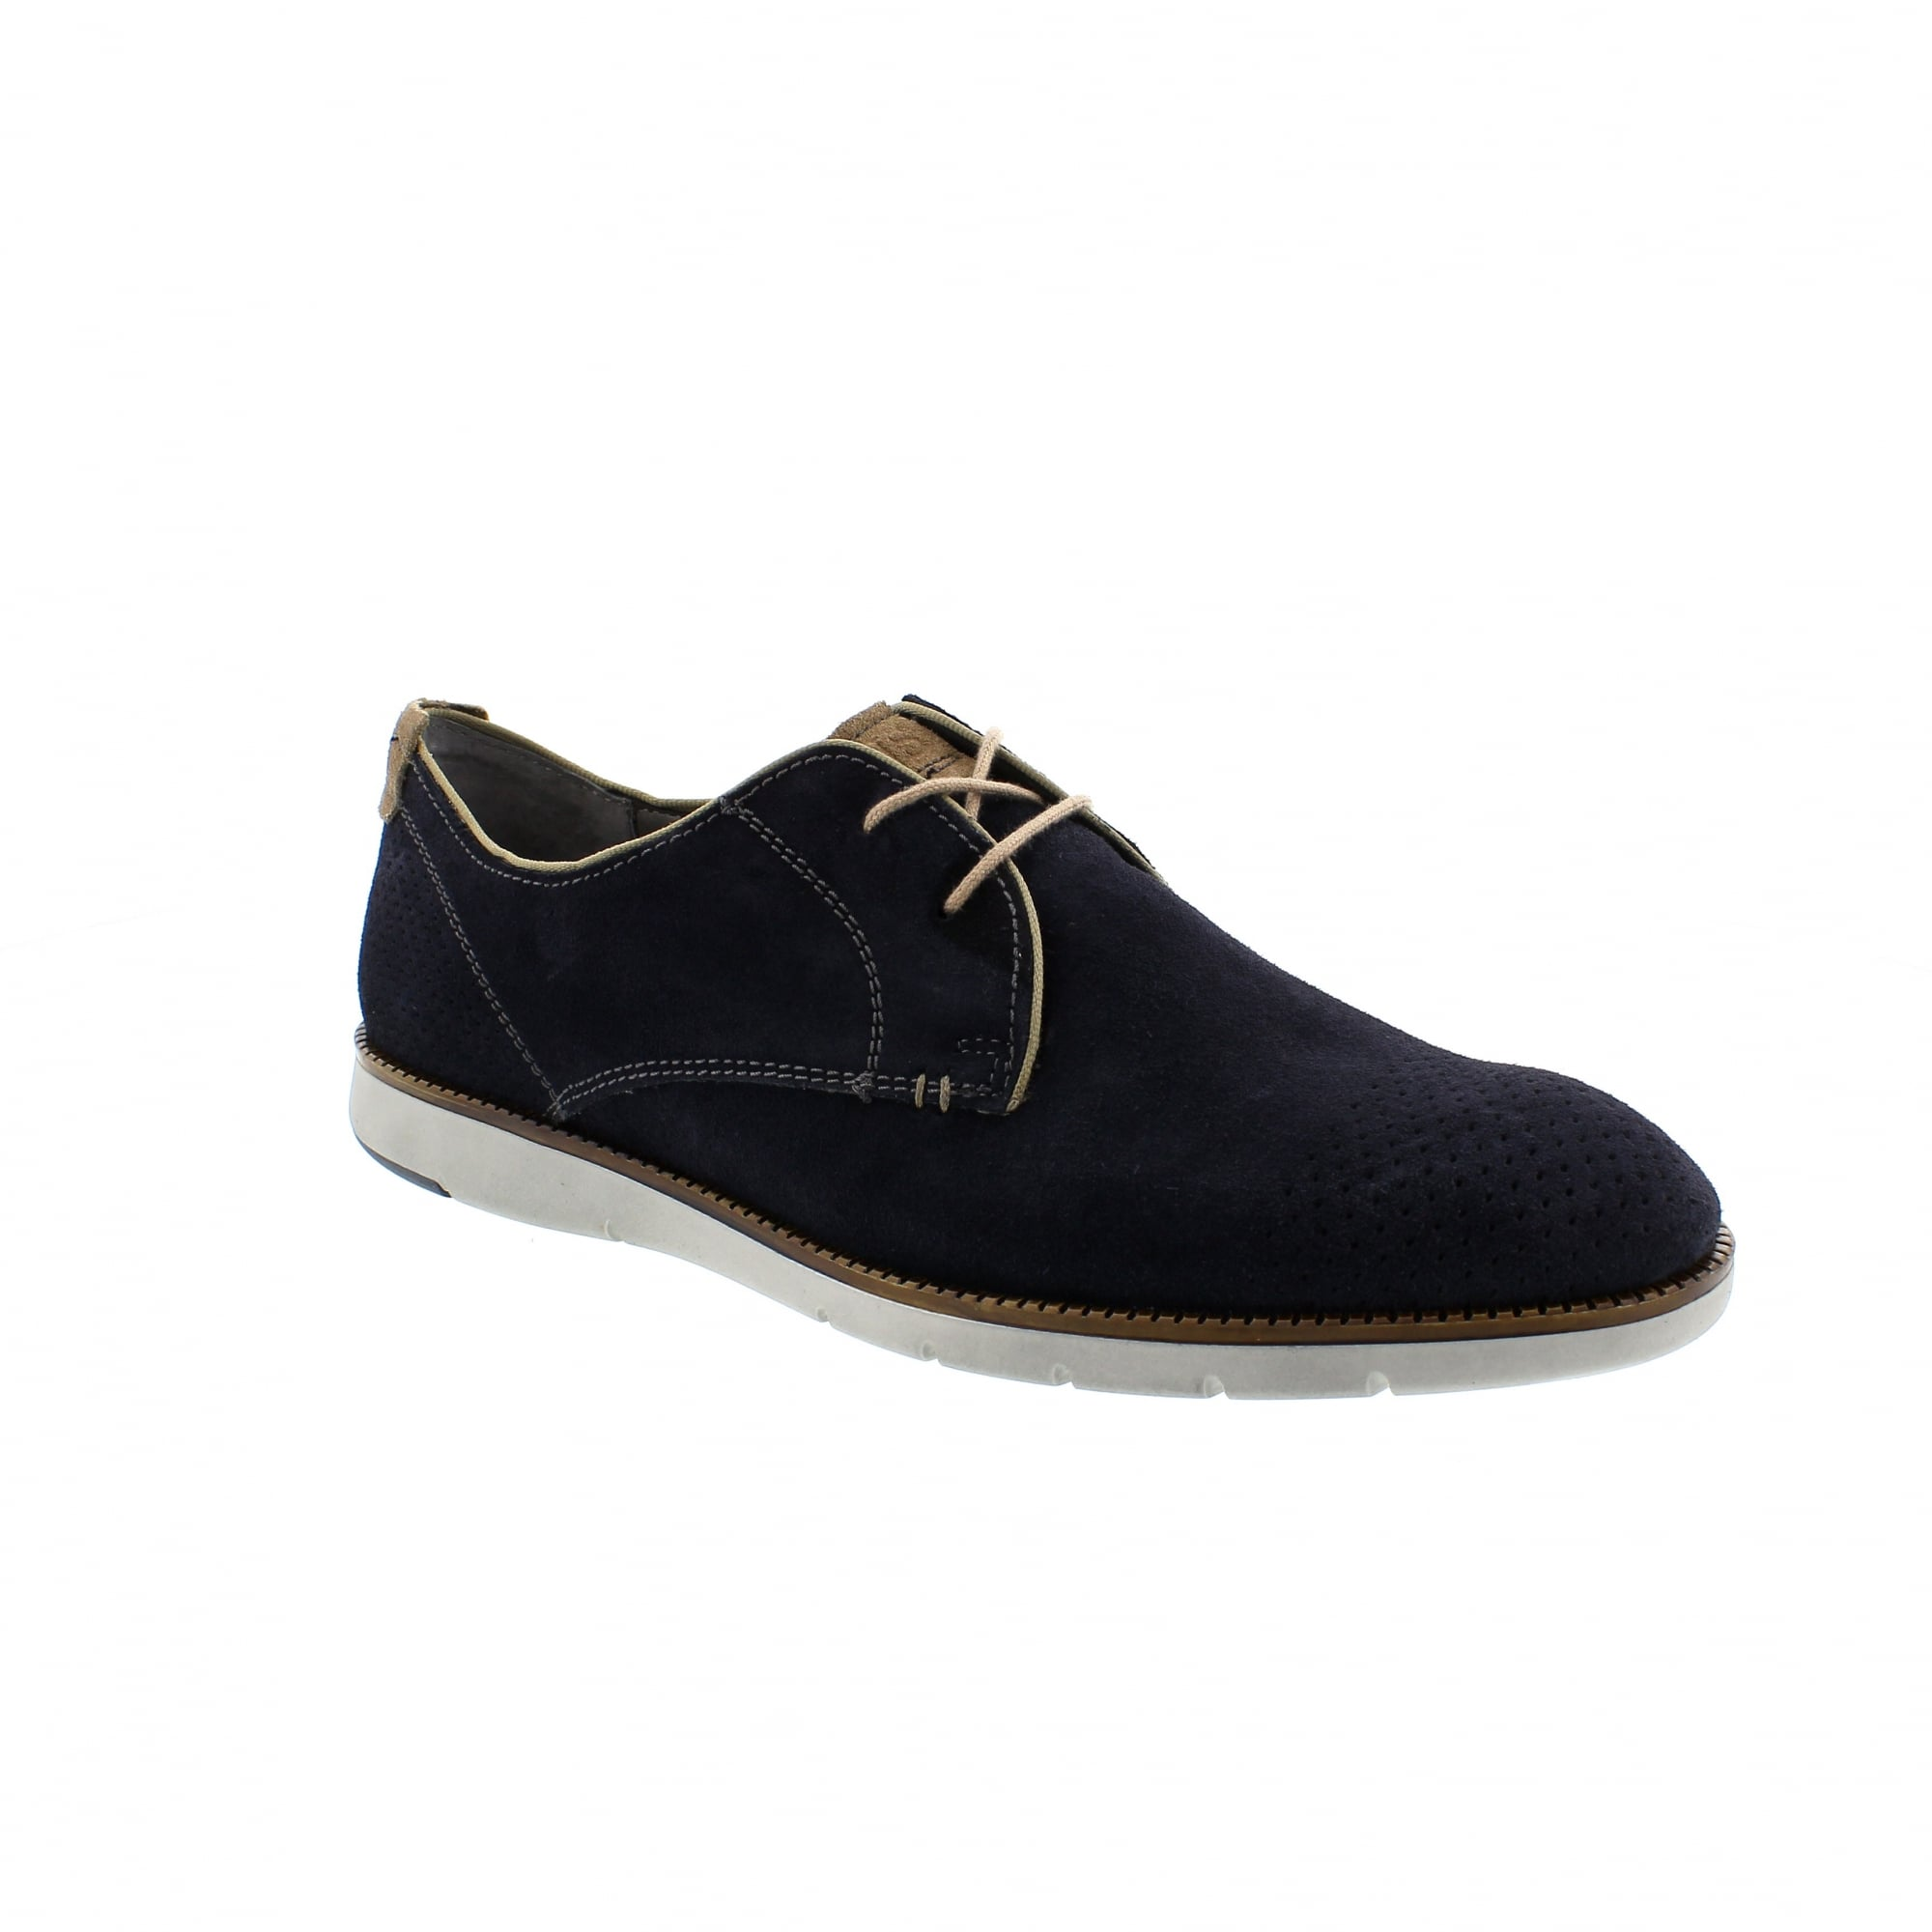 Mens Harry 03 Derbys, Black Josef Seibel